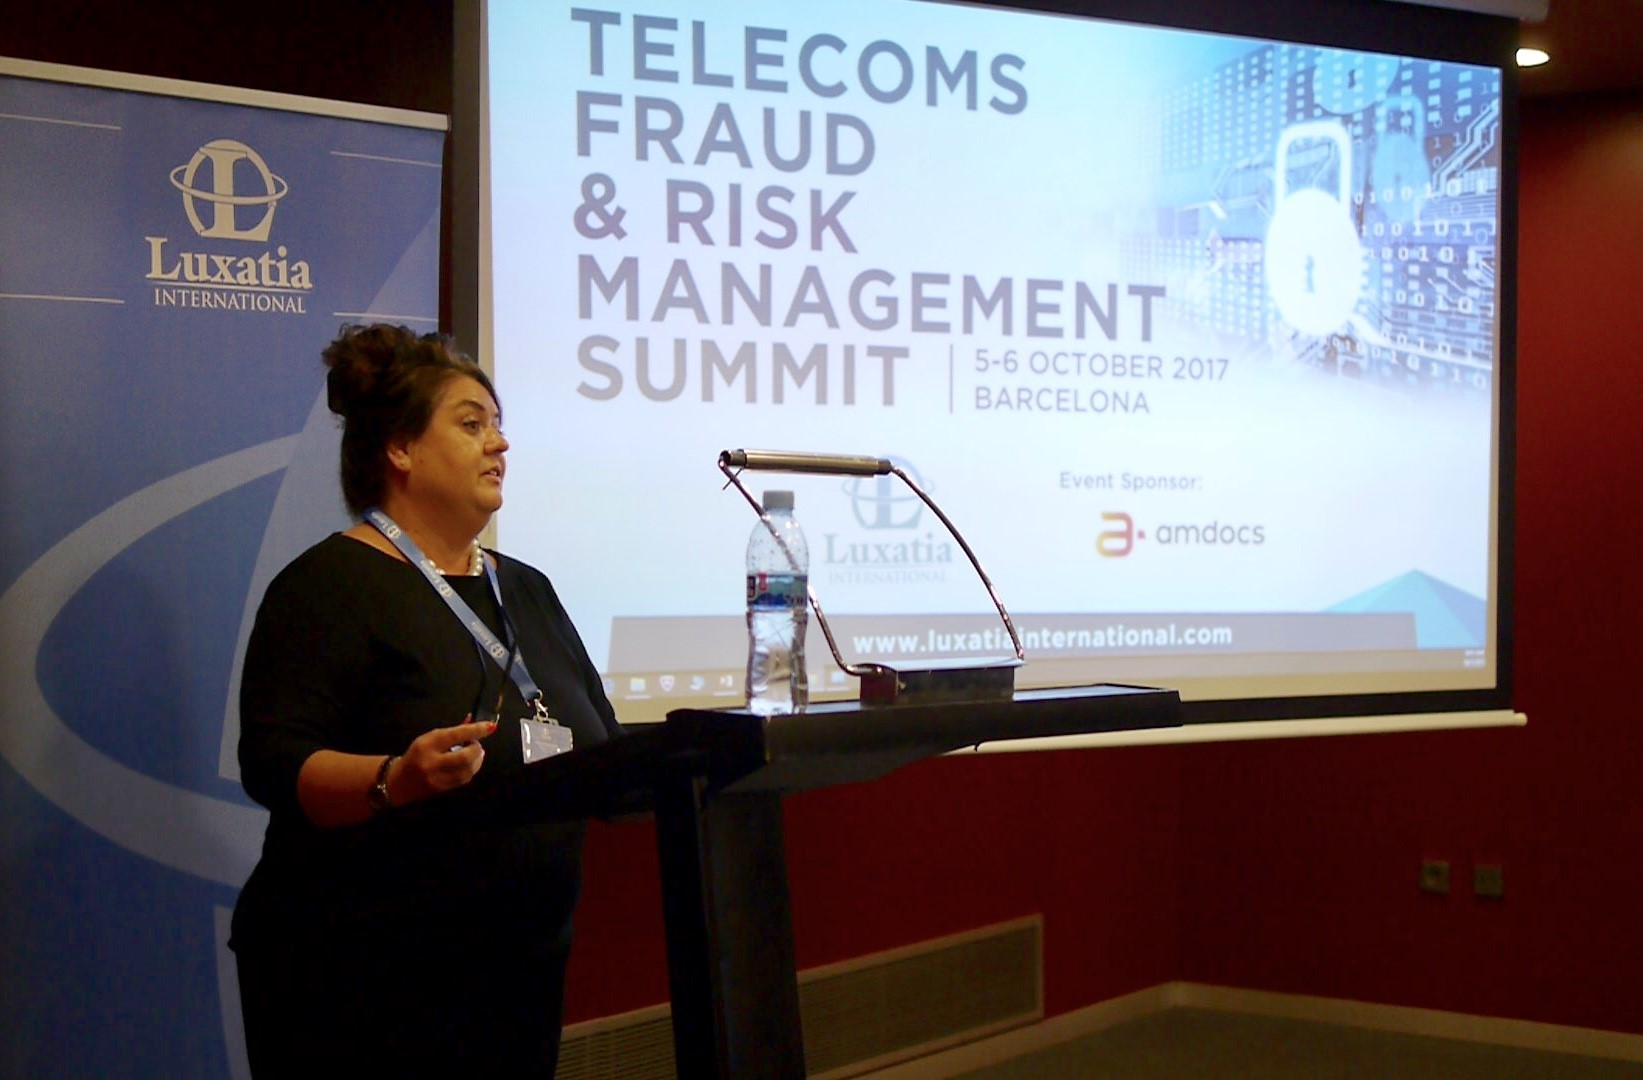 Roscom Director to chair European summit to fight telecoms fraudsters